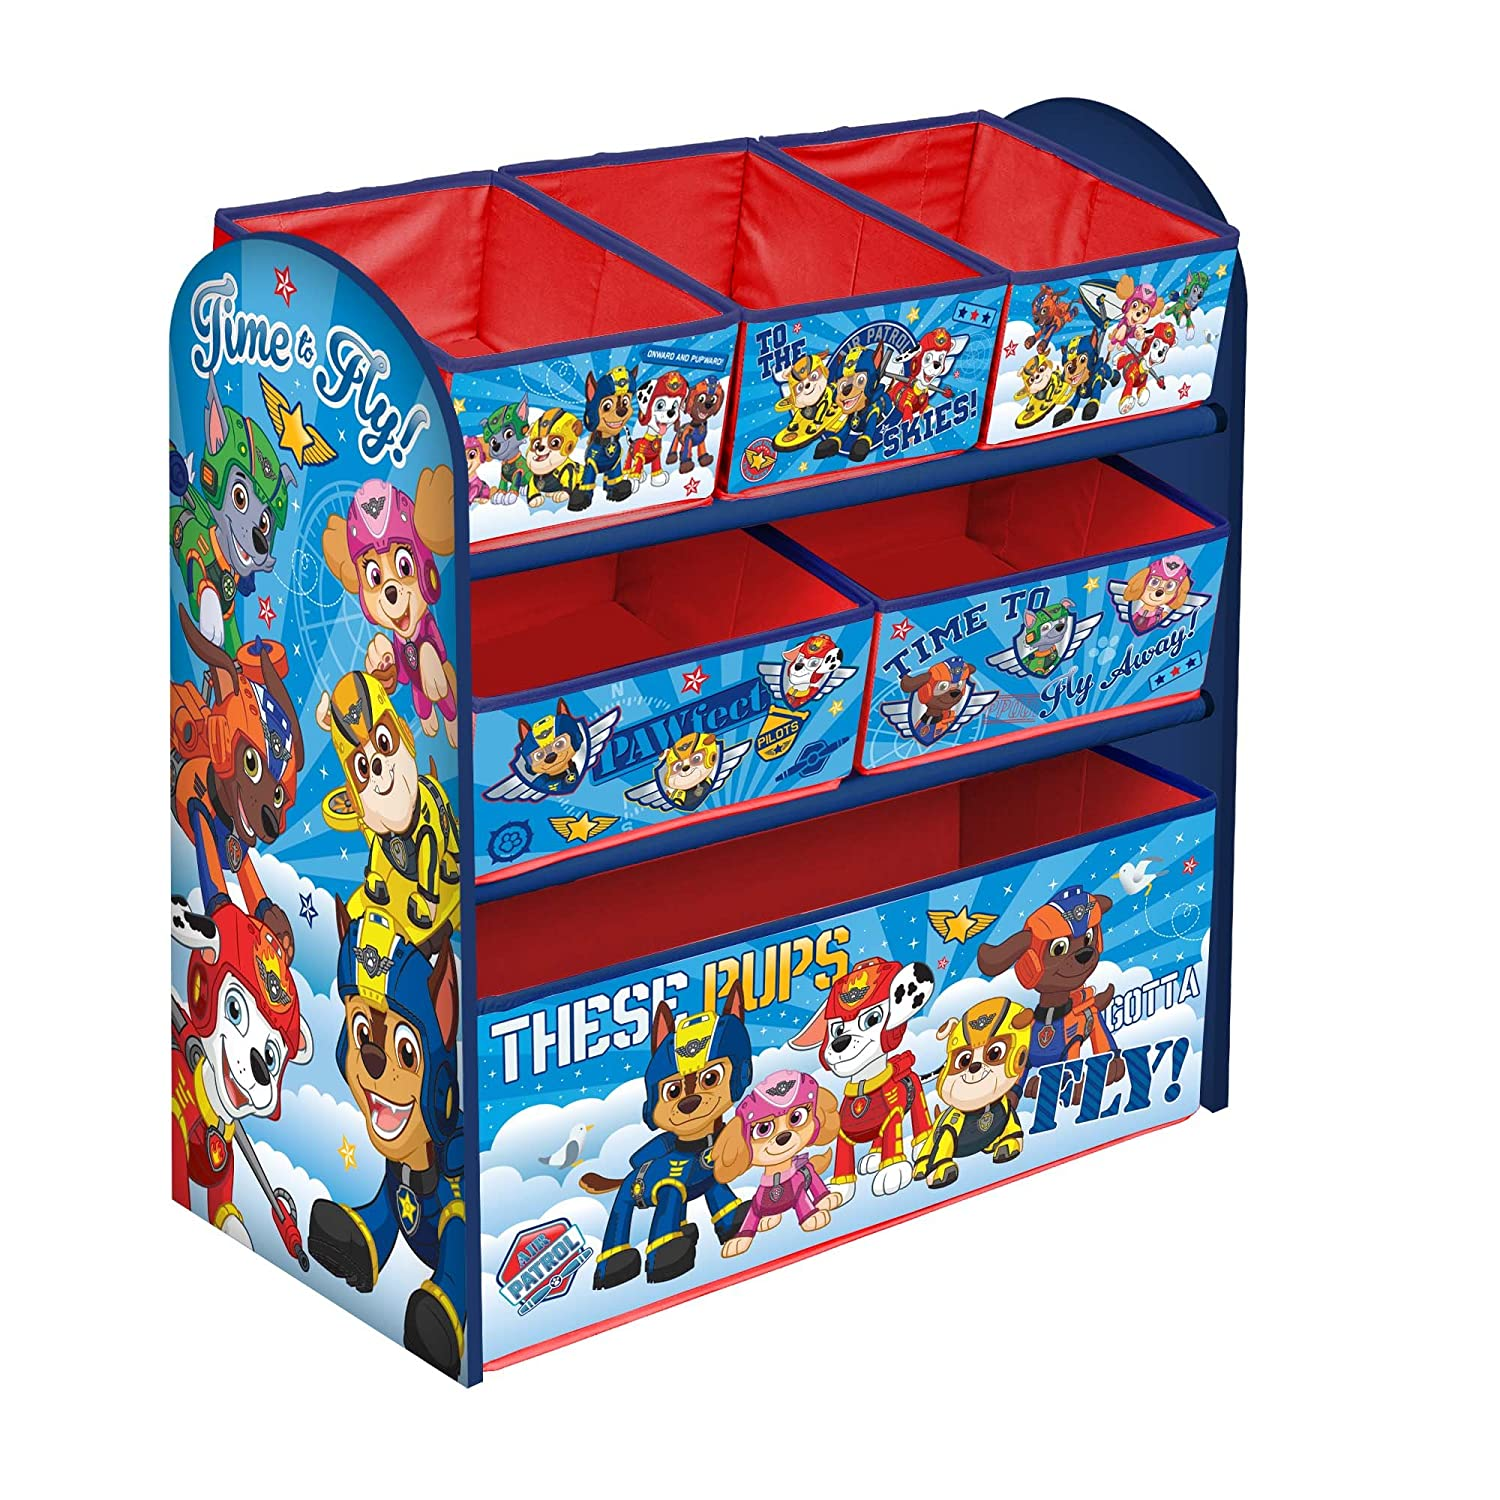 Disney Mickey Mouse Children's Toy Storage Unit Box Organiser Wooden Multi Tray - Kids Bedroom Playroom Furniture Steal A Deal